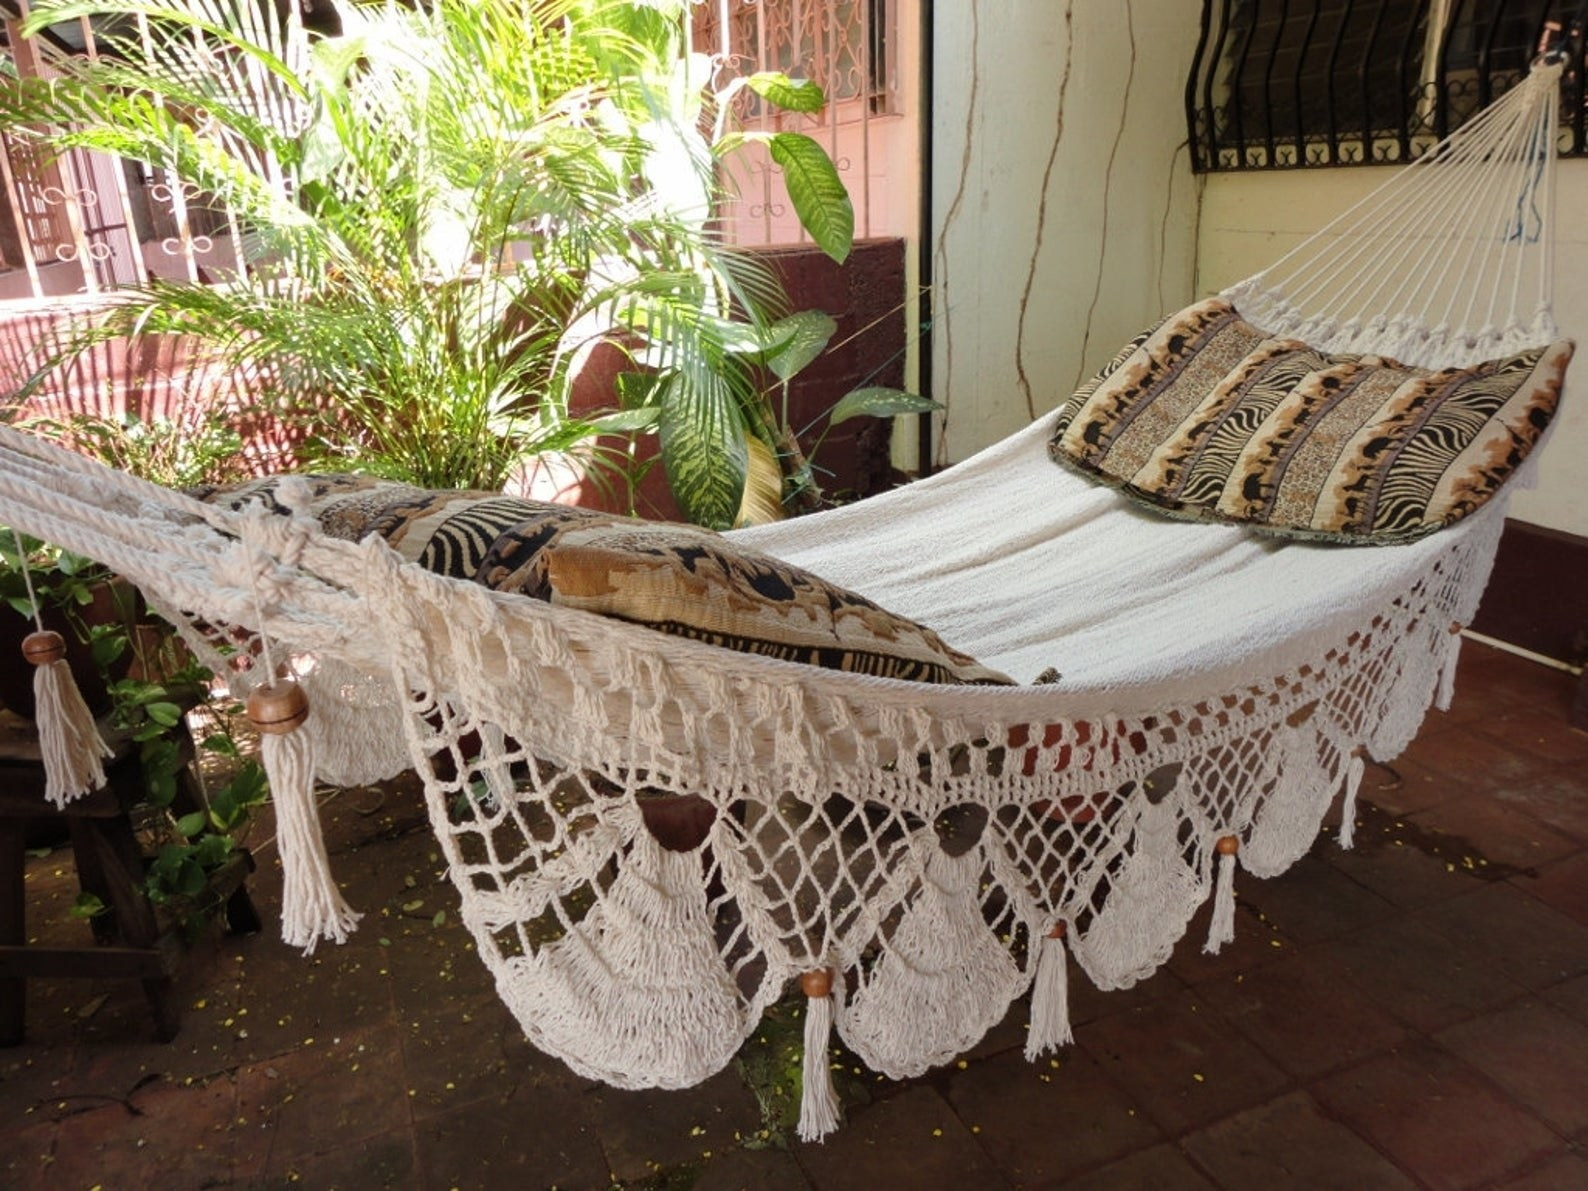 Hammock outside next to plant with pillows on top